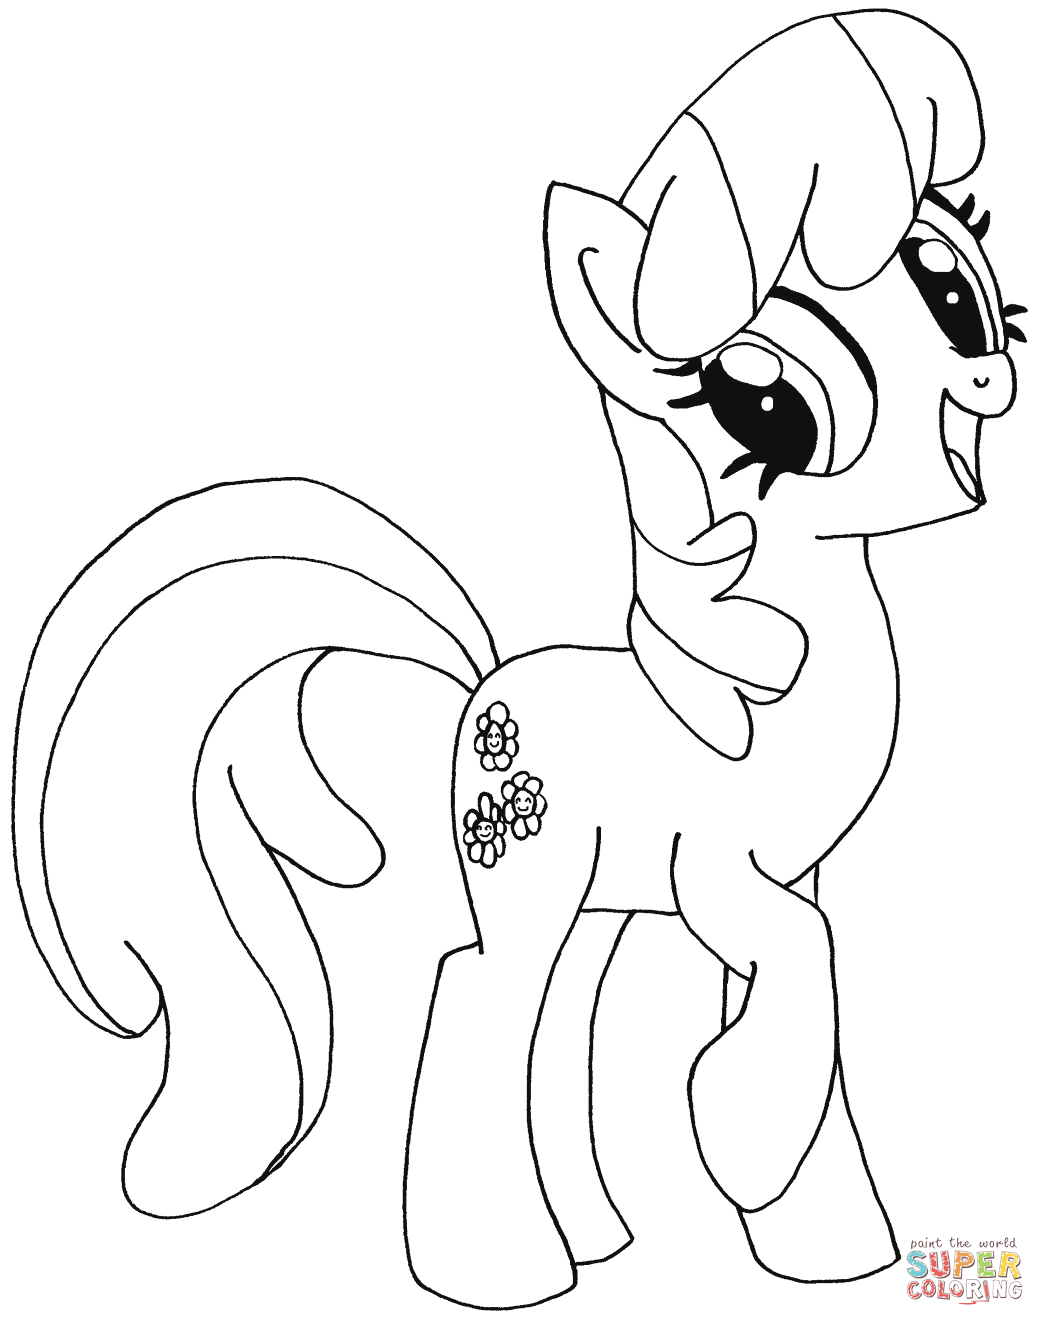 My Little Pony Cheerilee Coloring Page Free Printable Coloring Pages My Little Pony Coloring Mermaid Coloring Pages Moon Coloring Pages